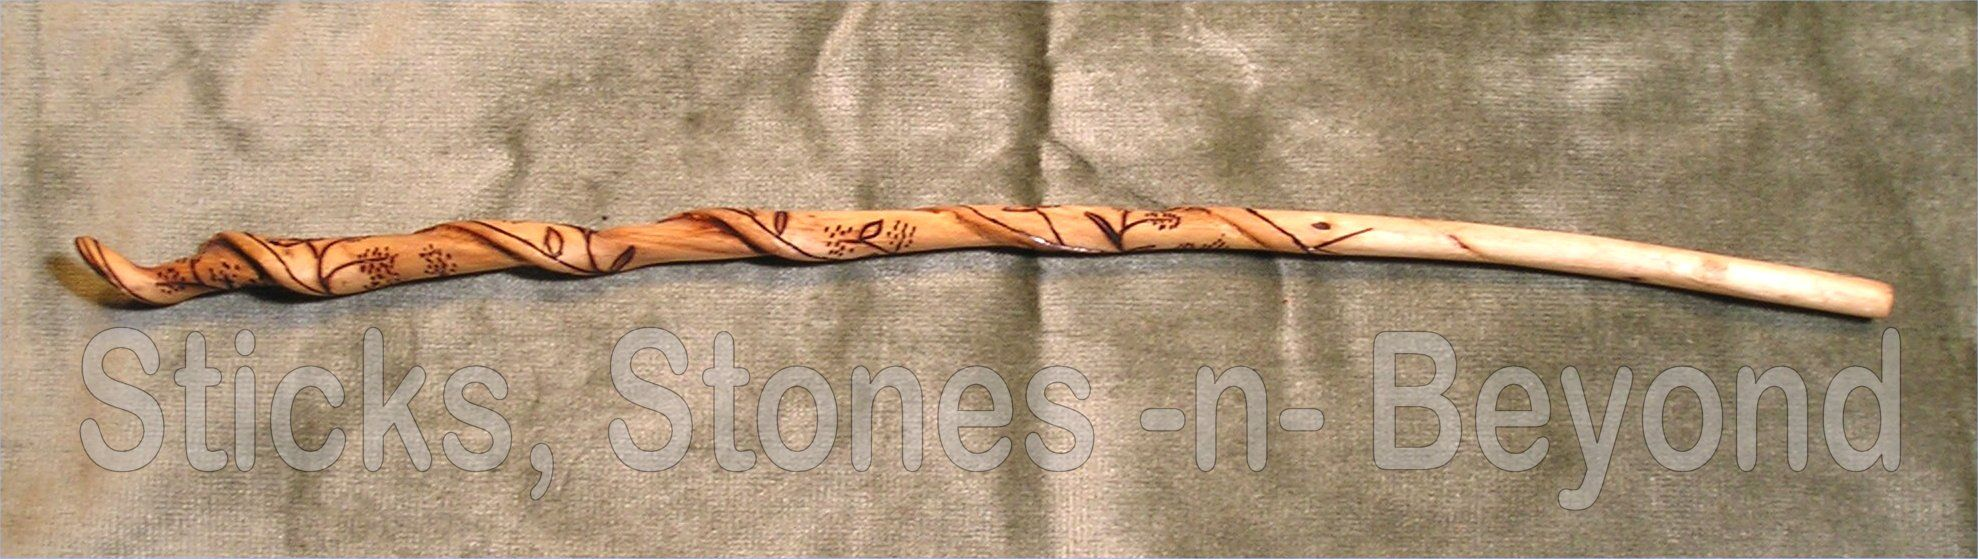 Wooden wand designs images galleries for Wand designs